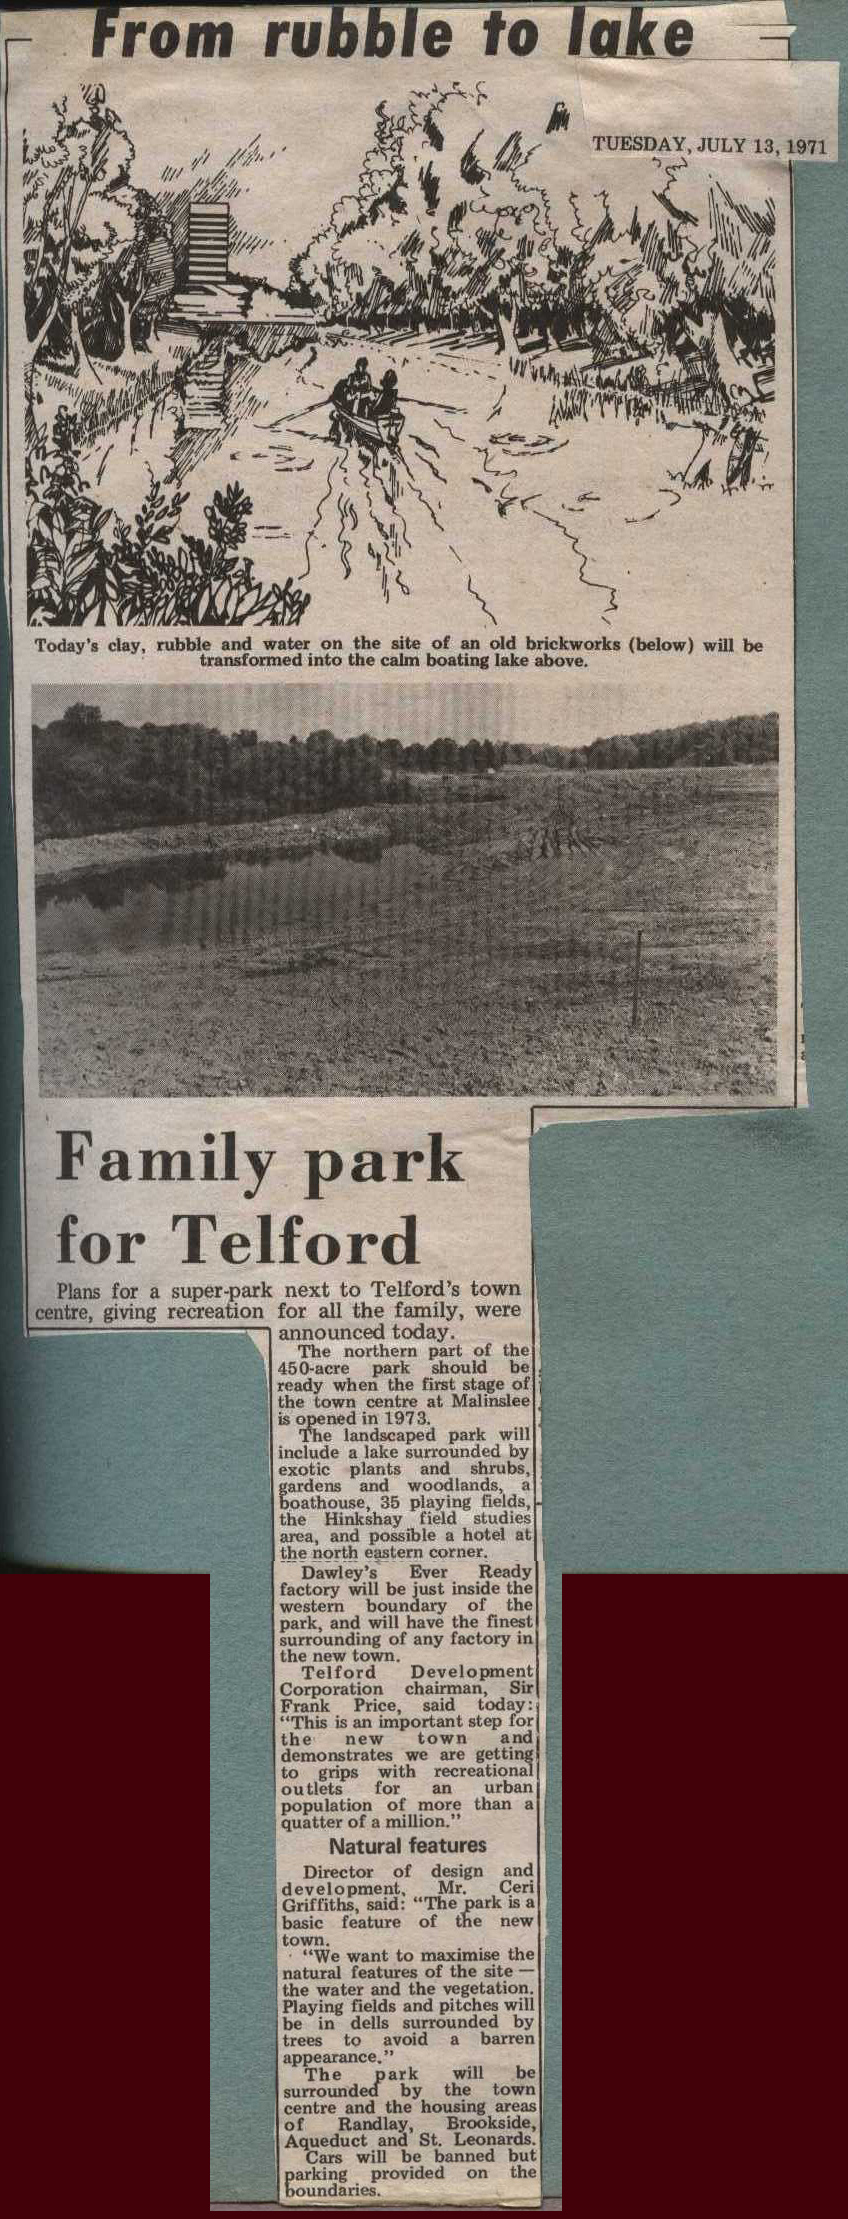 Family Park for Telford